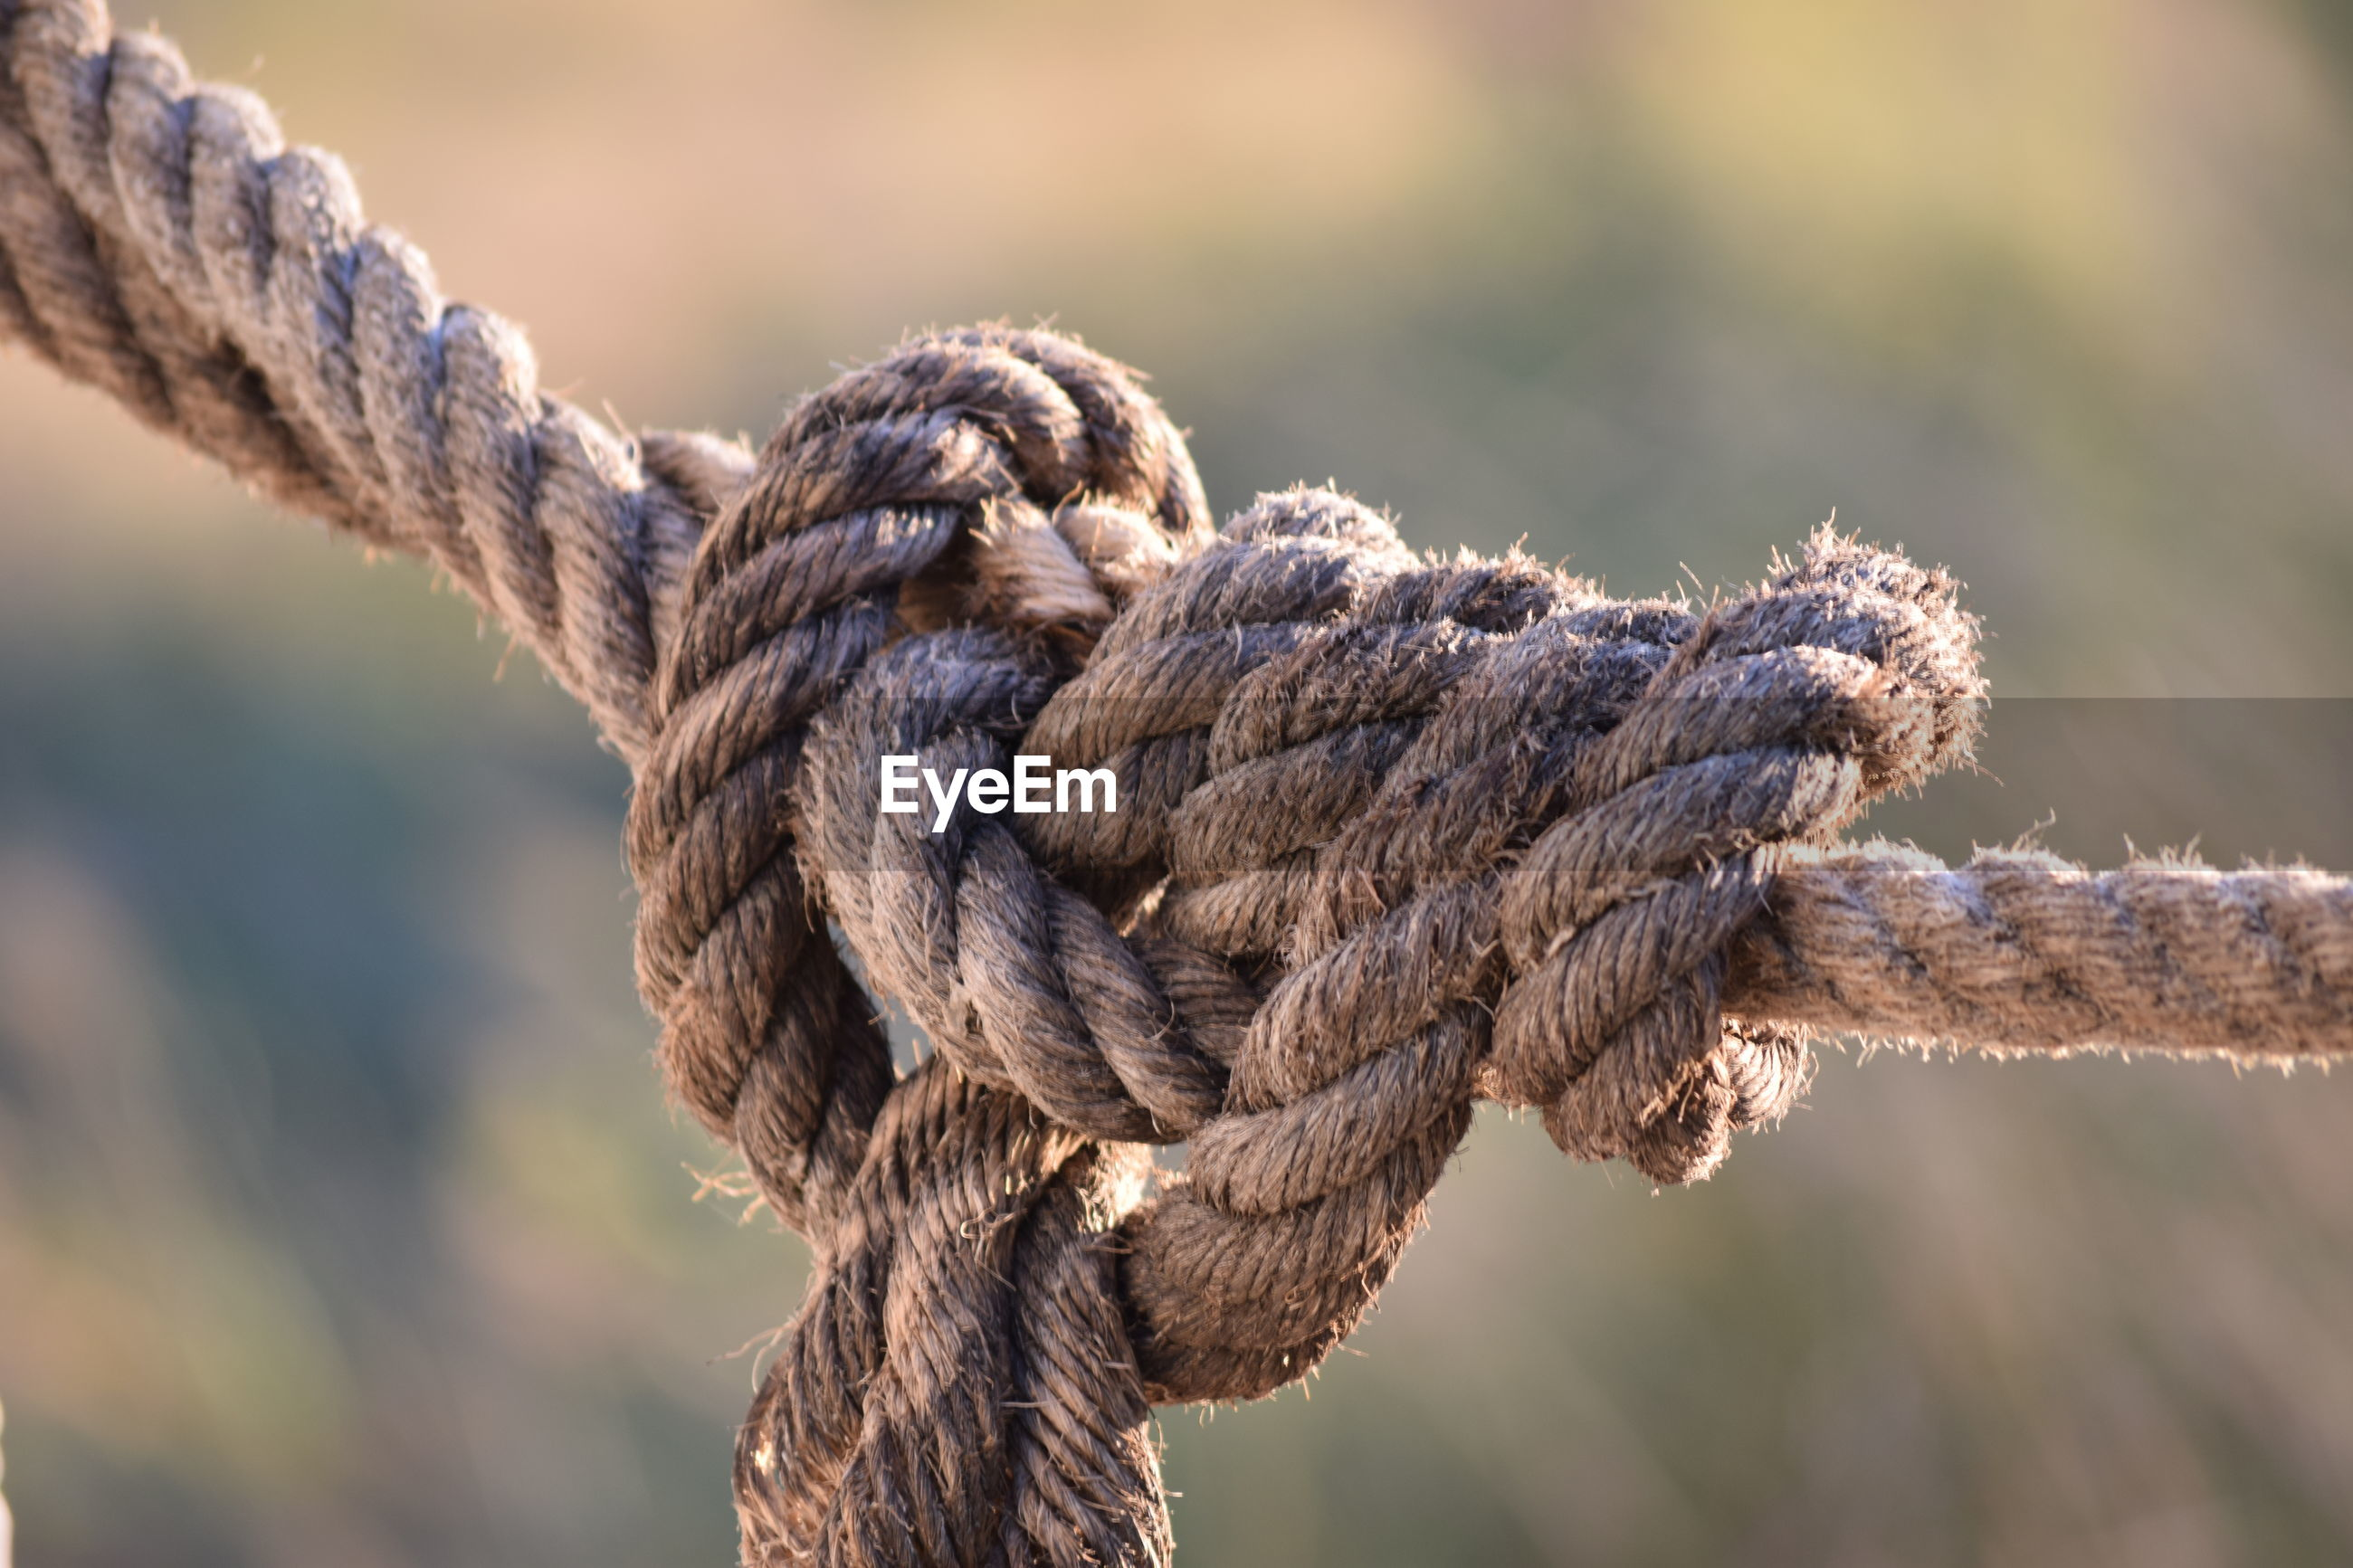 Close-up of messy tied rope